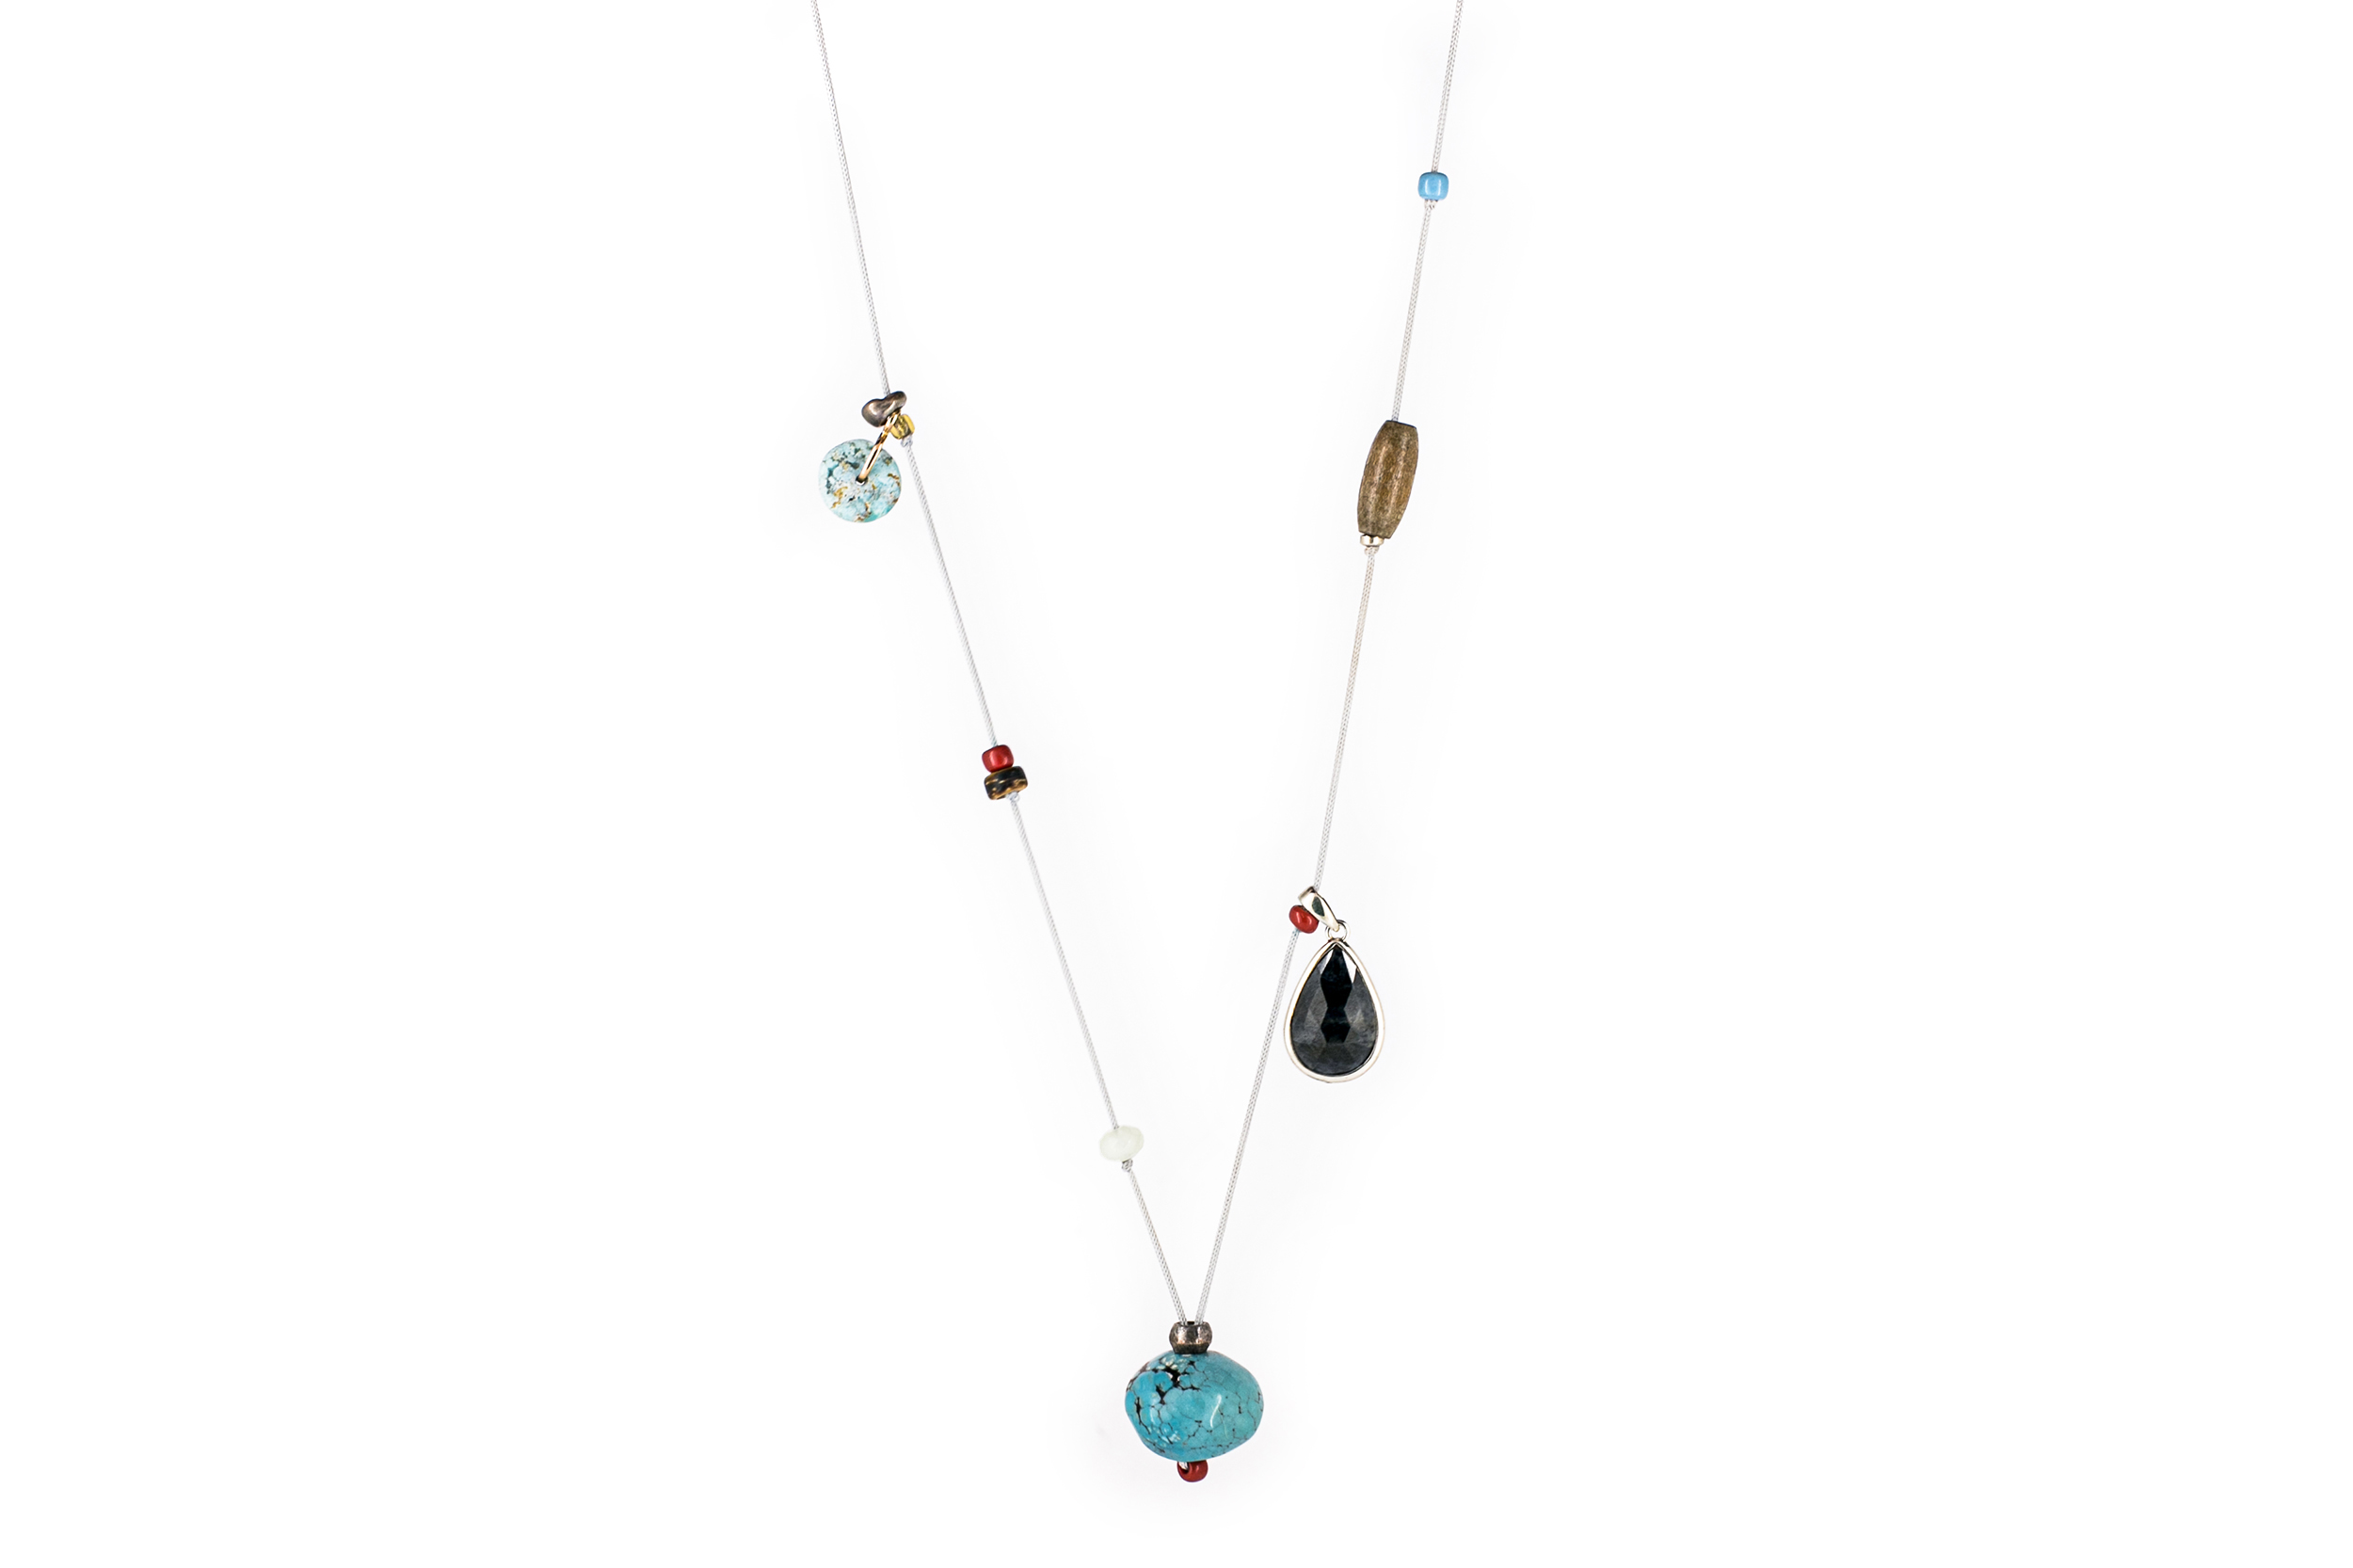 TRANQUILITY Croatia Necklace